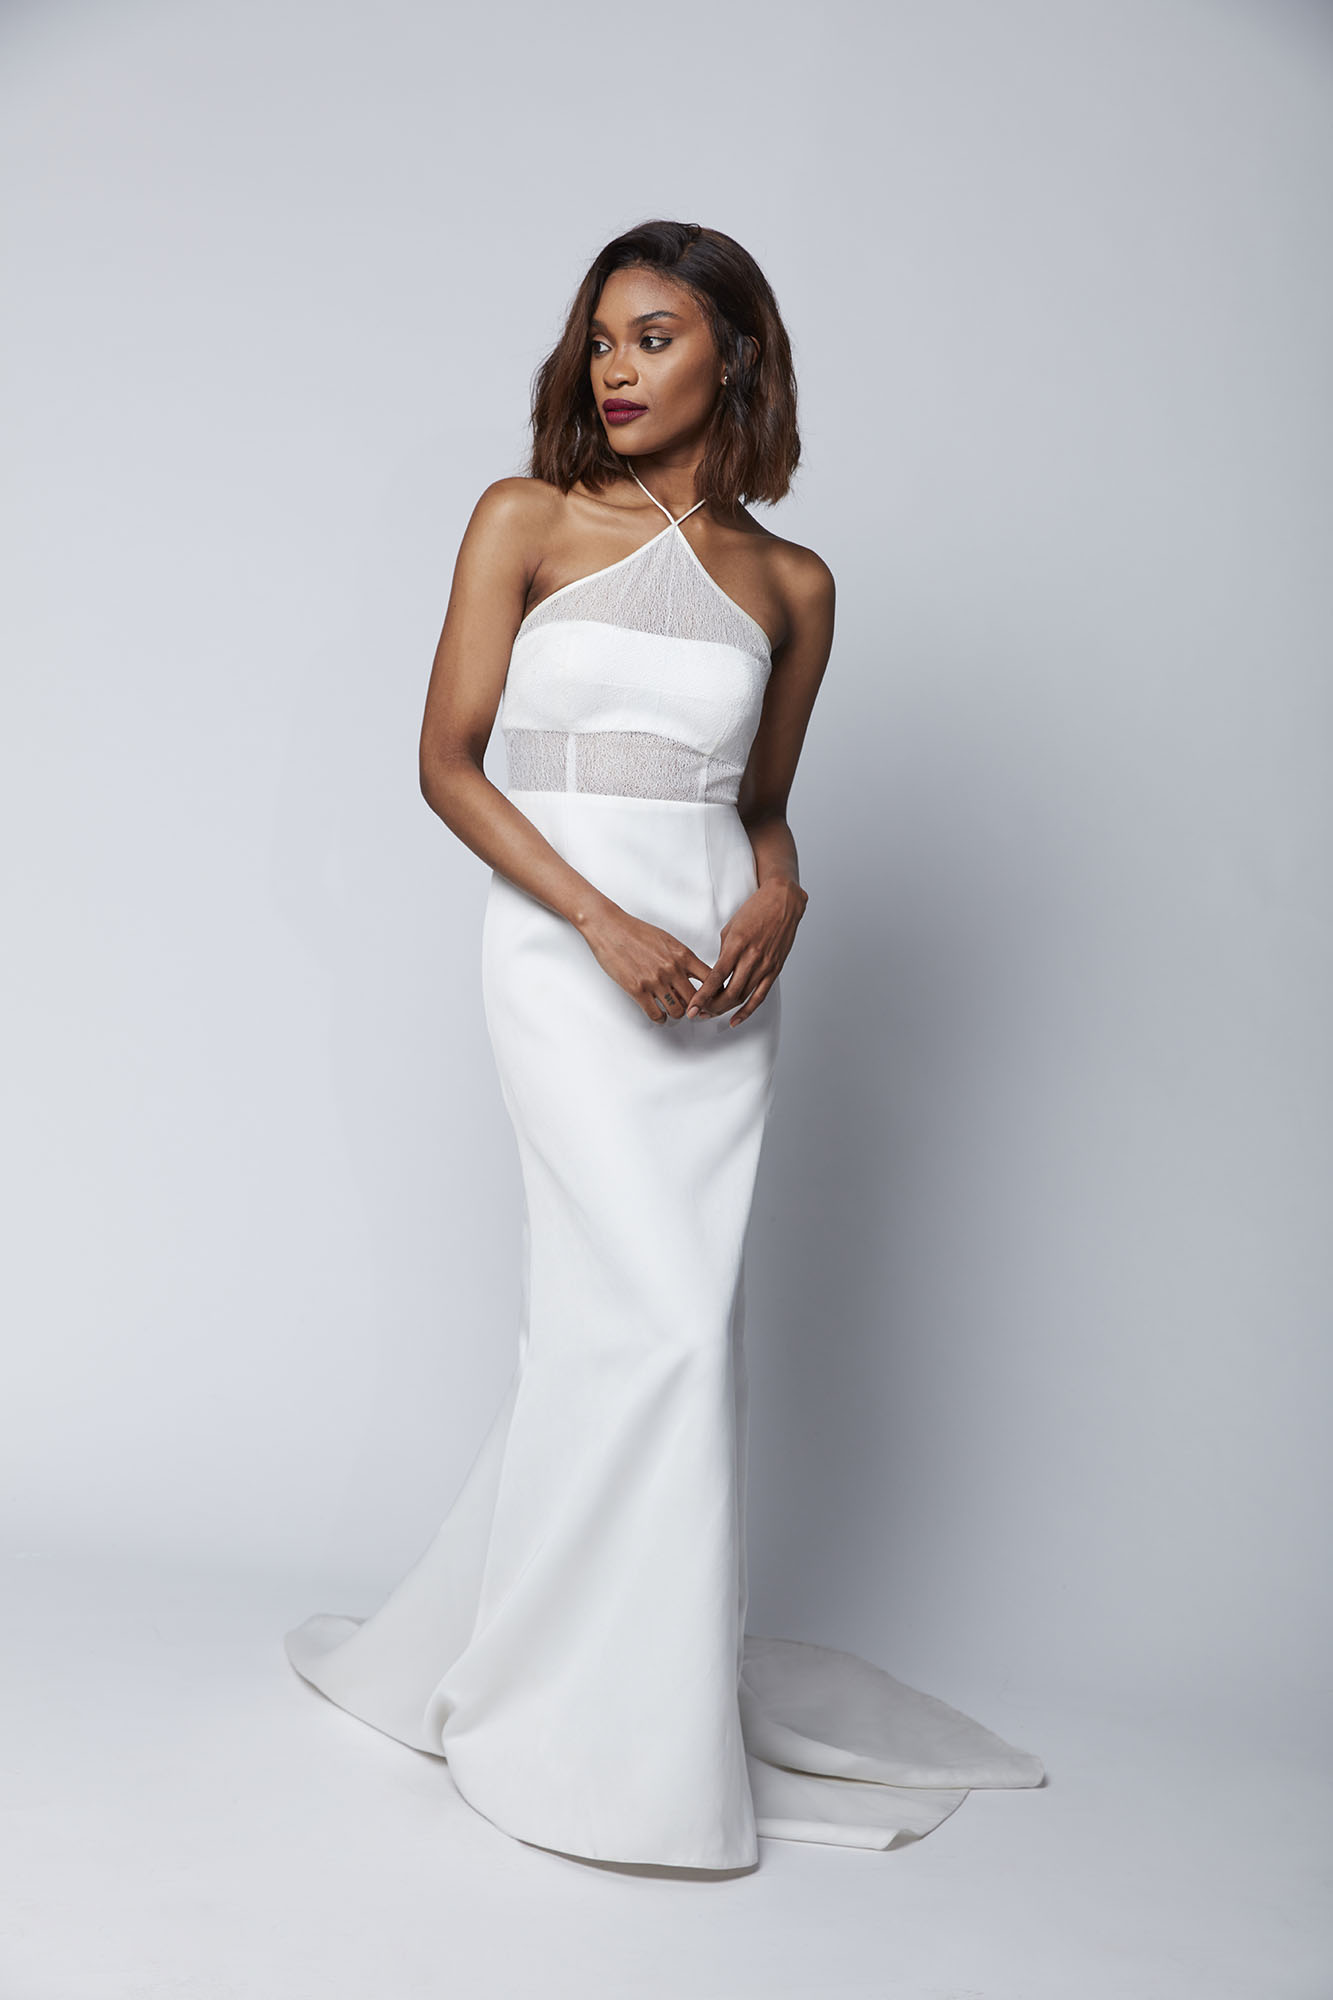 The Marisa is a sophisticated gown with a modern twist featuring a cropped bodice, cross front halter neck and fitted skirt with a dramatic train.